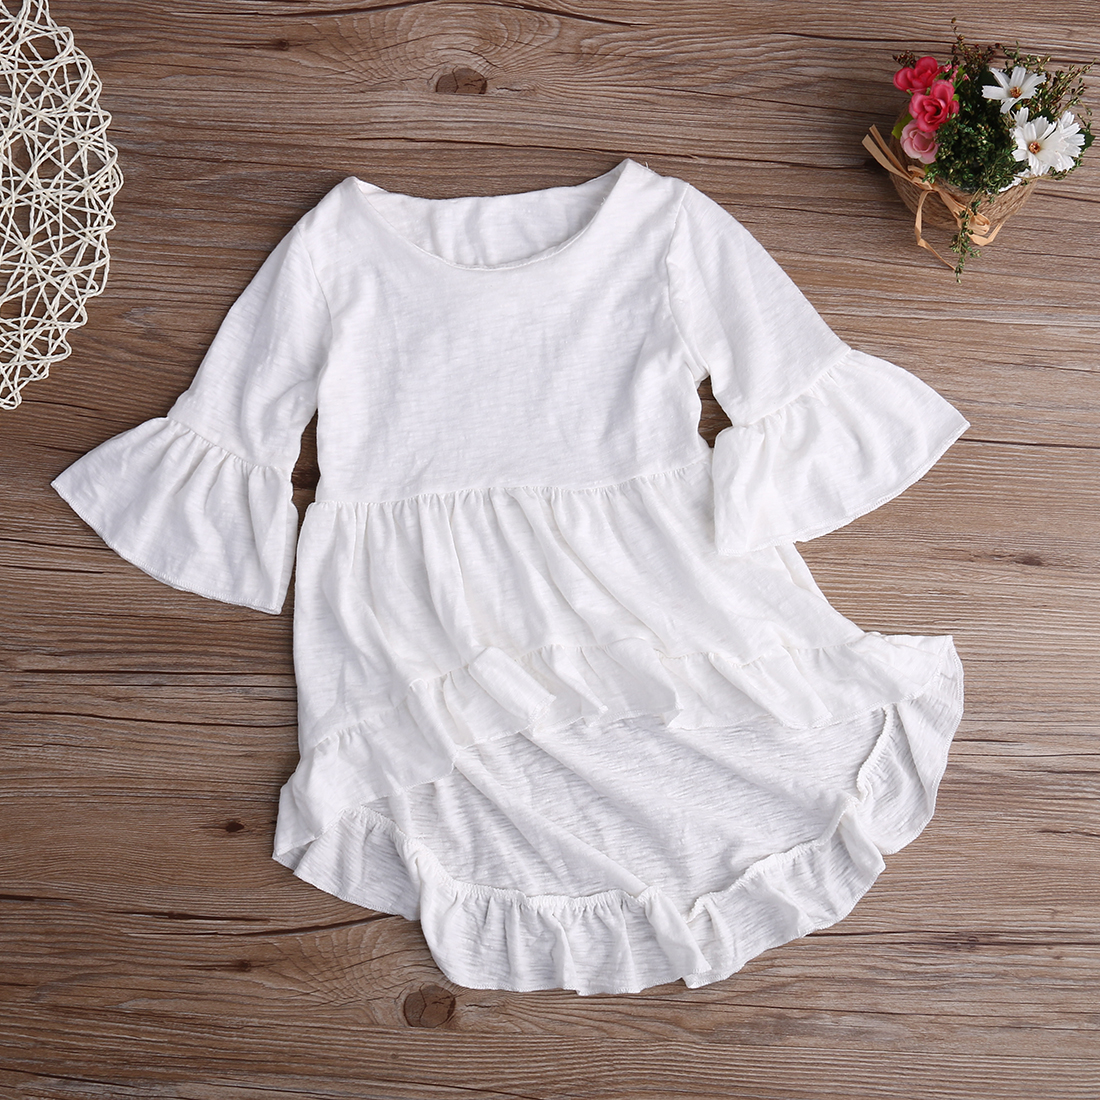 White Baby Girls Dress Frills Flare Sleeve Top T-Shirt Party Ruffles Hem Dresses 1-6Y кресло надувное intex собака цвет белый 65 х 64 х 74 см